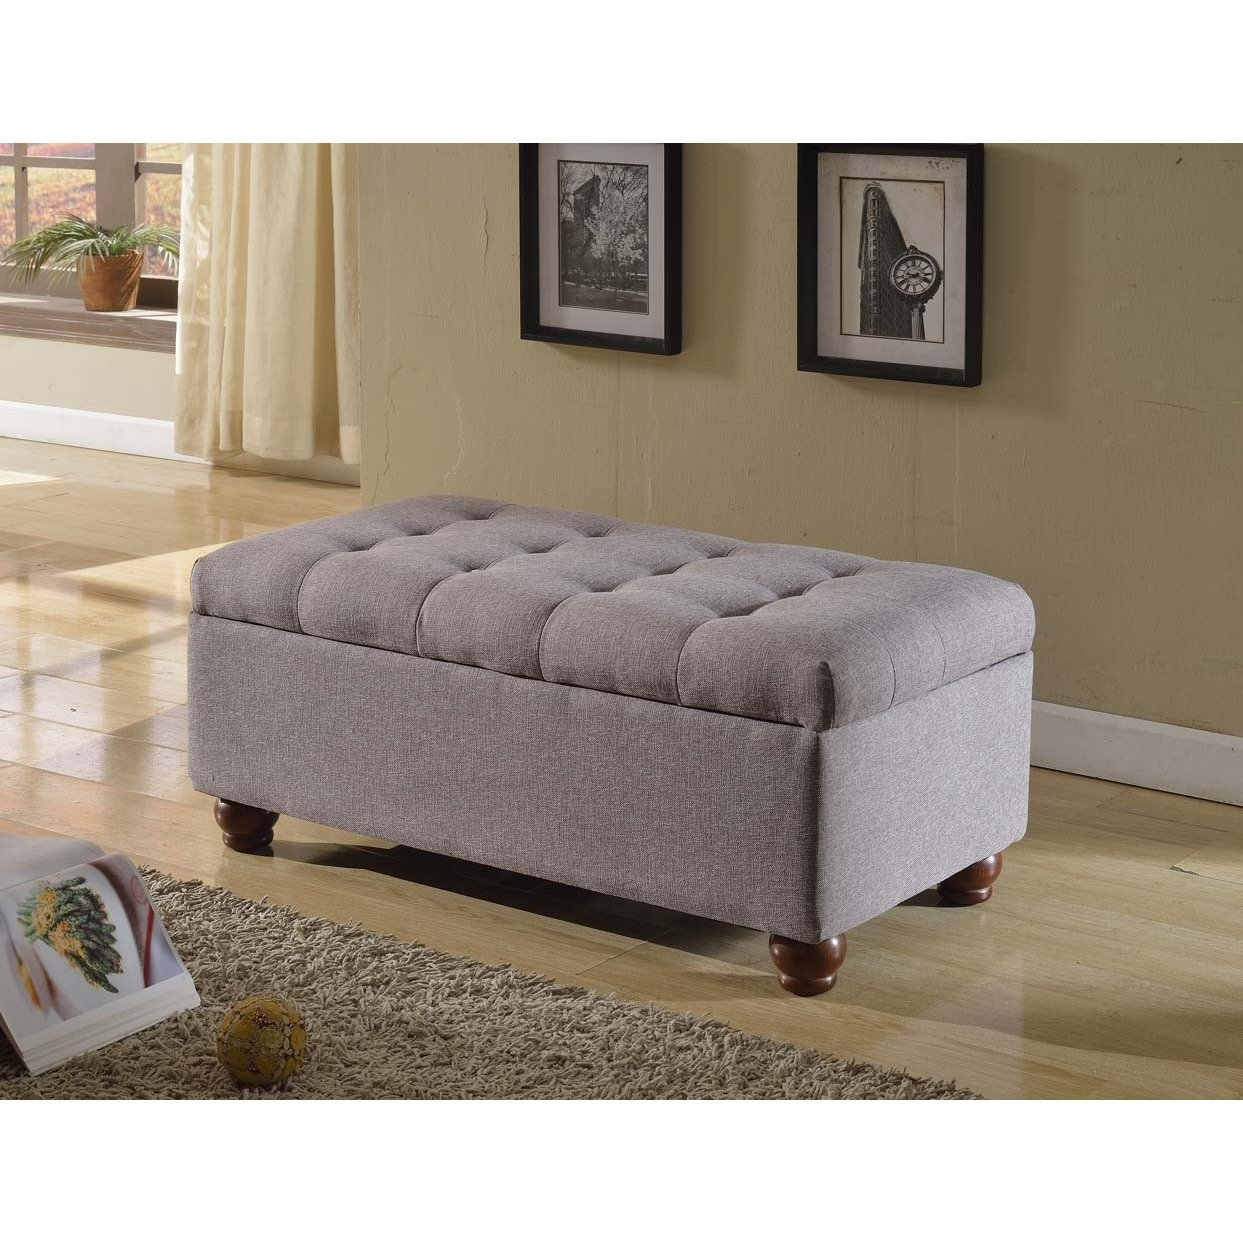 amazoncom tufted linen and upholstered grey storage ottoman  - amazoncom tufted linen and upholstered grey storage ottoman benchfurniture with cushion and safety hinge (great for bedroomliving room)kitchen